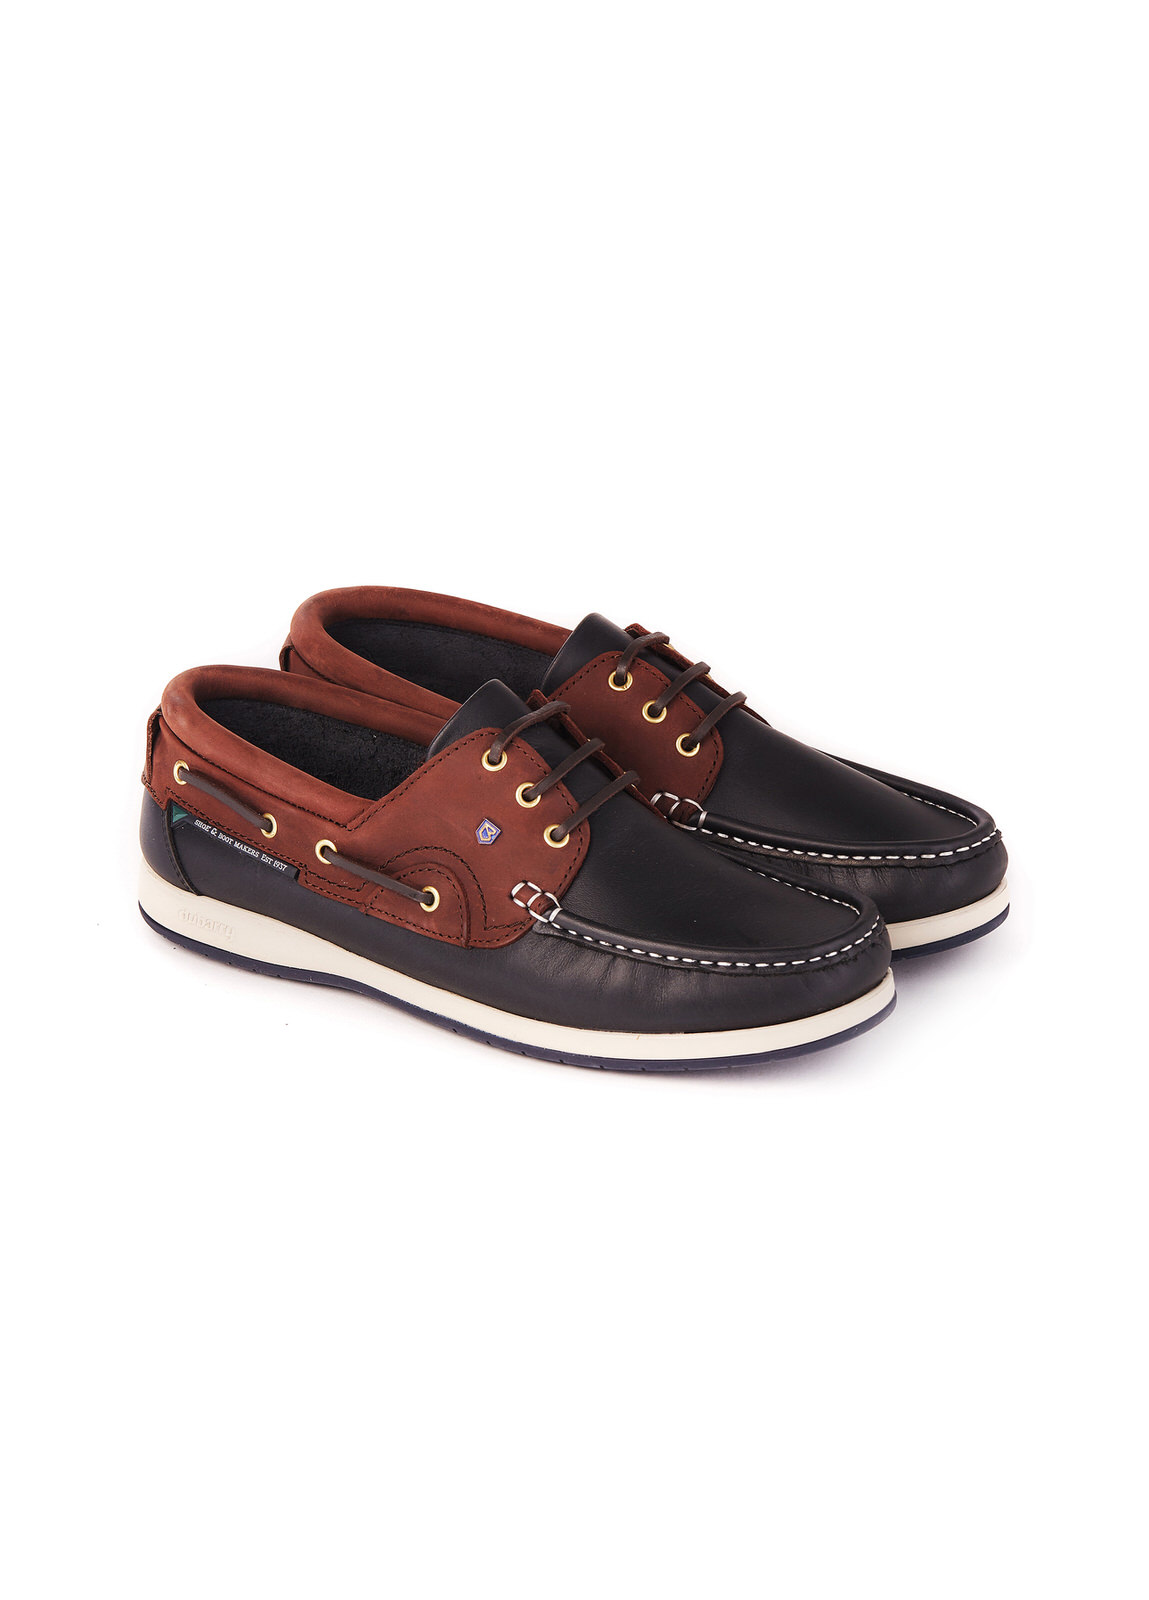 Commodore_XLT_Deck_Shoe_Navy/Brown_Image_1